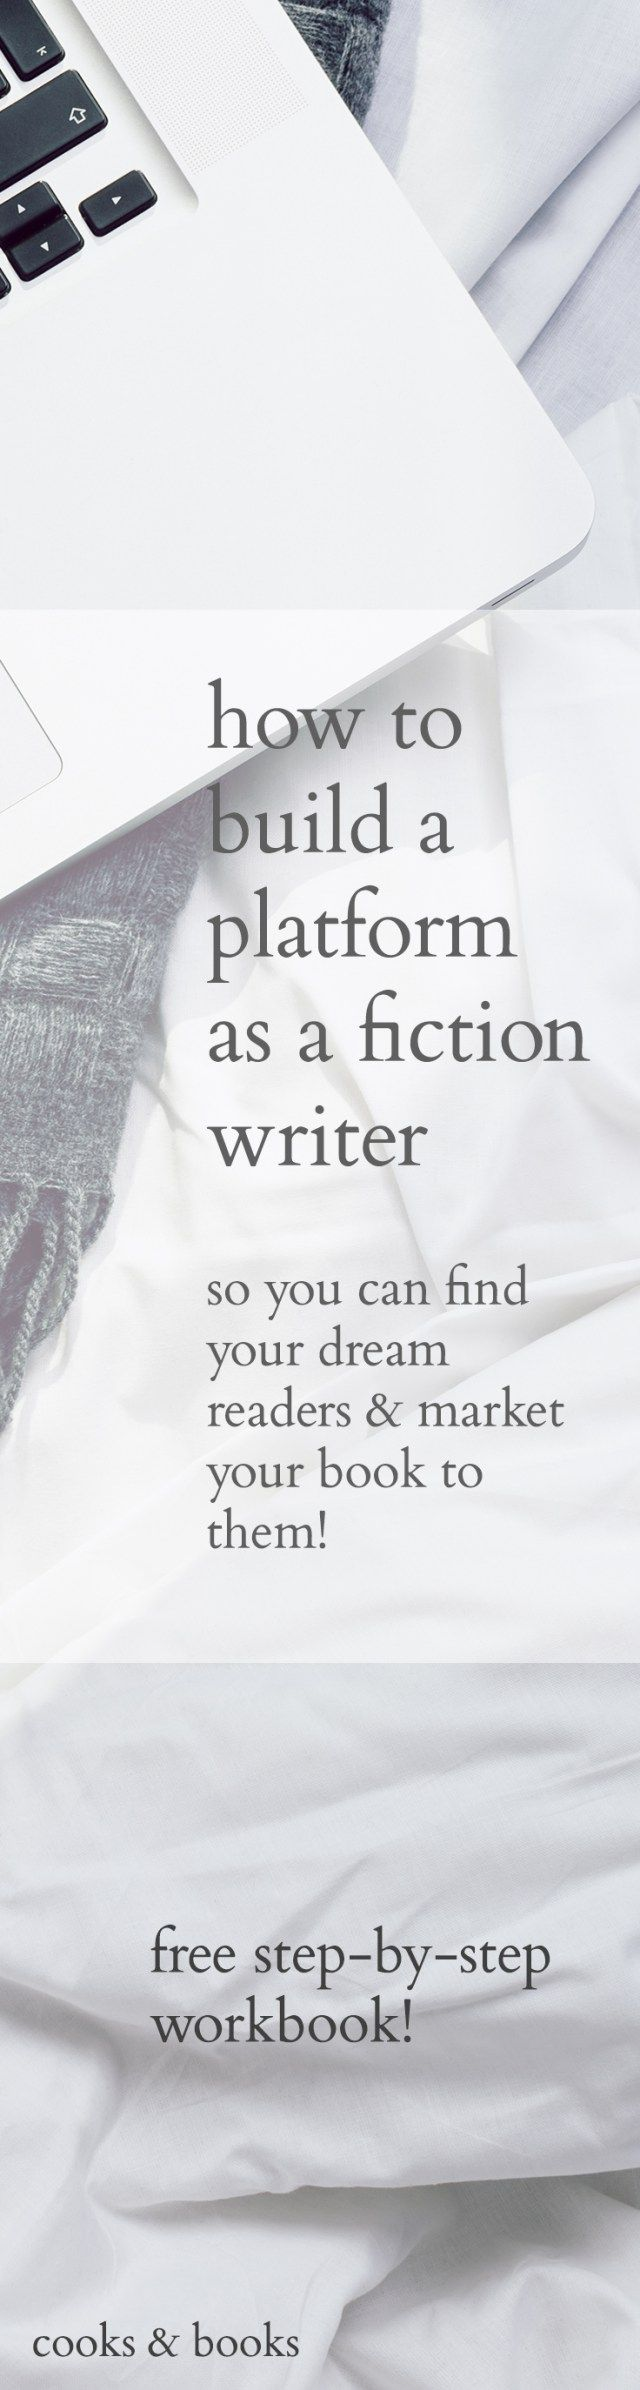 How to Build a Platform as a Fiction Writer [Free Workbook!] - http://cooksplusbooks.com/2016/03/15/how-to-build-a-platform-as-a-fiction-writer-free-workbook/